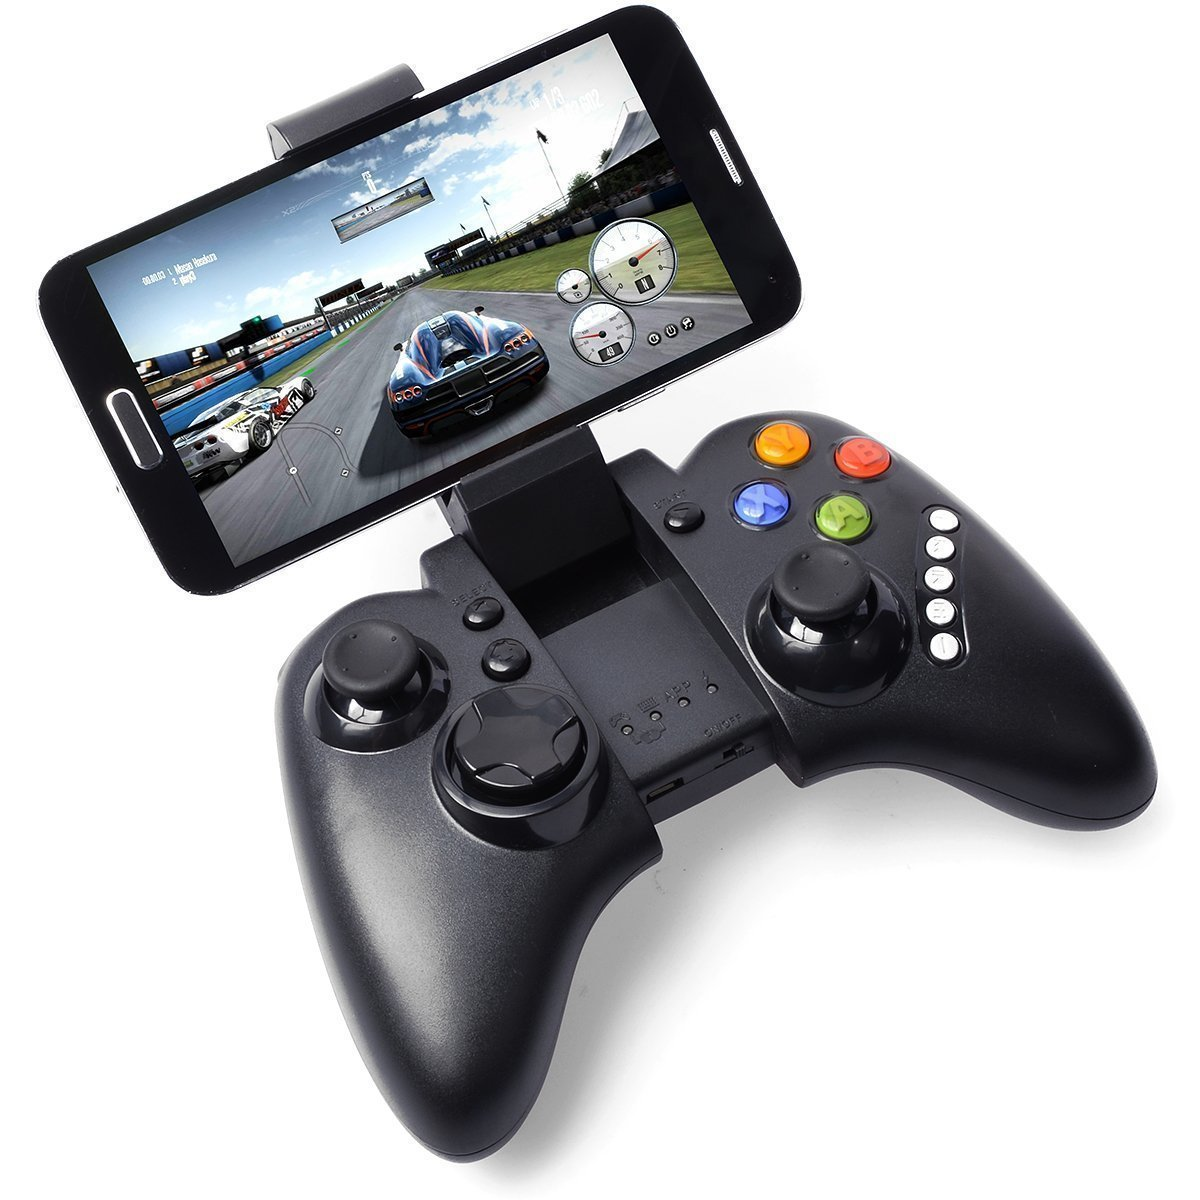 GamutTek PG-9021 wireless Multimedia Bluetooth Spiel Controller Gamepad Joystick fü r Android PC Pad Smartphone Huawei HTC LG Sony Samsung Galaxy Android Tablet PC